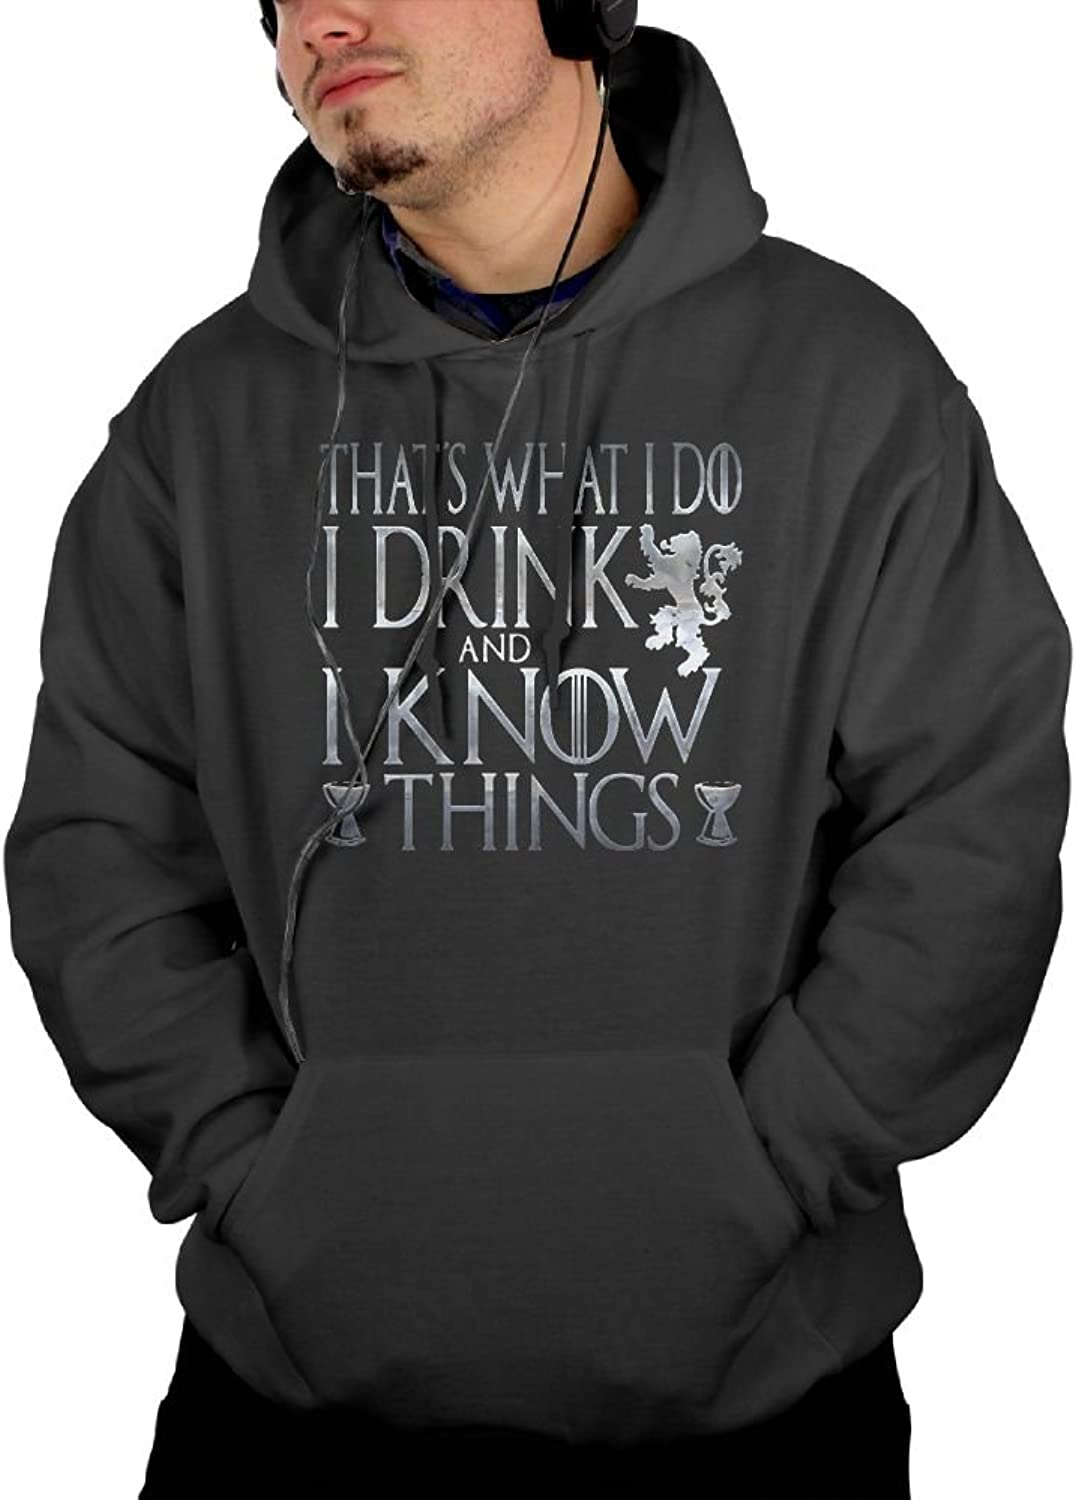 I Drink And I Know Things Navy Hoodie Unique Personality Fashion